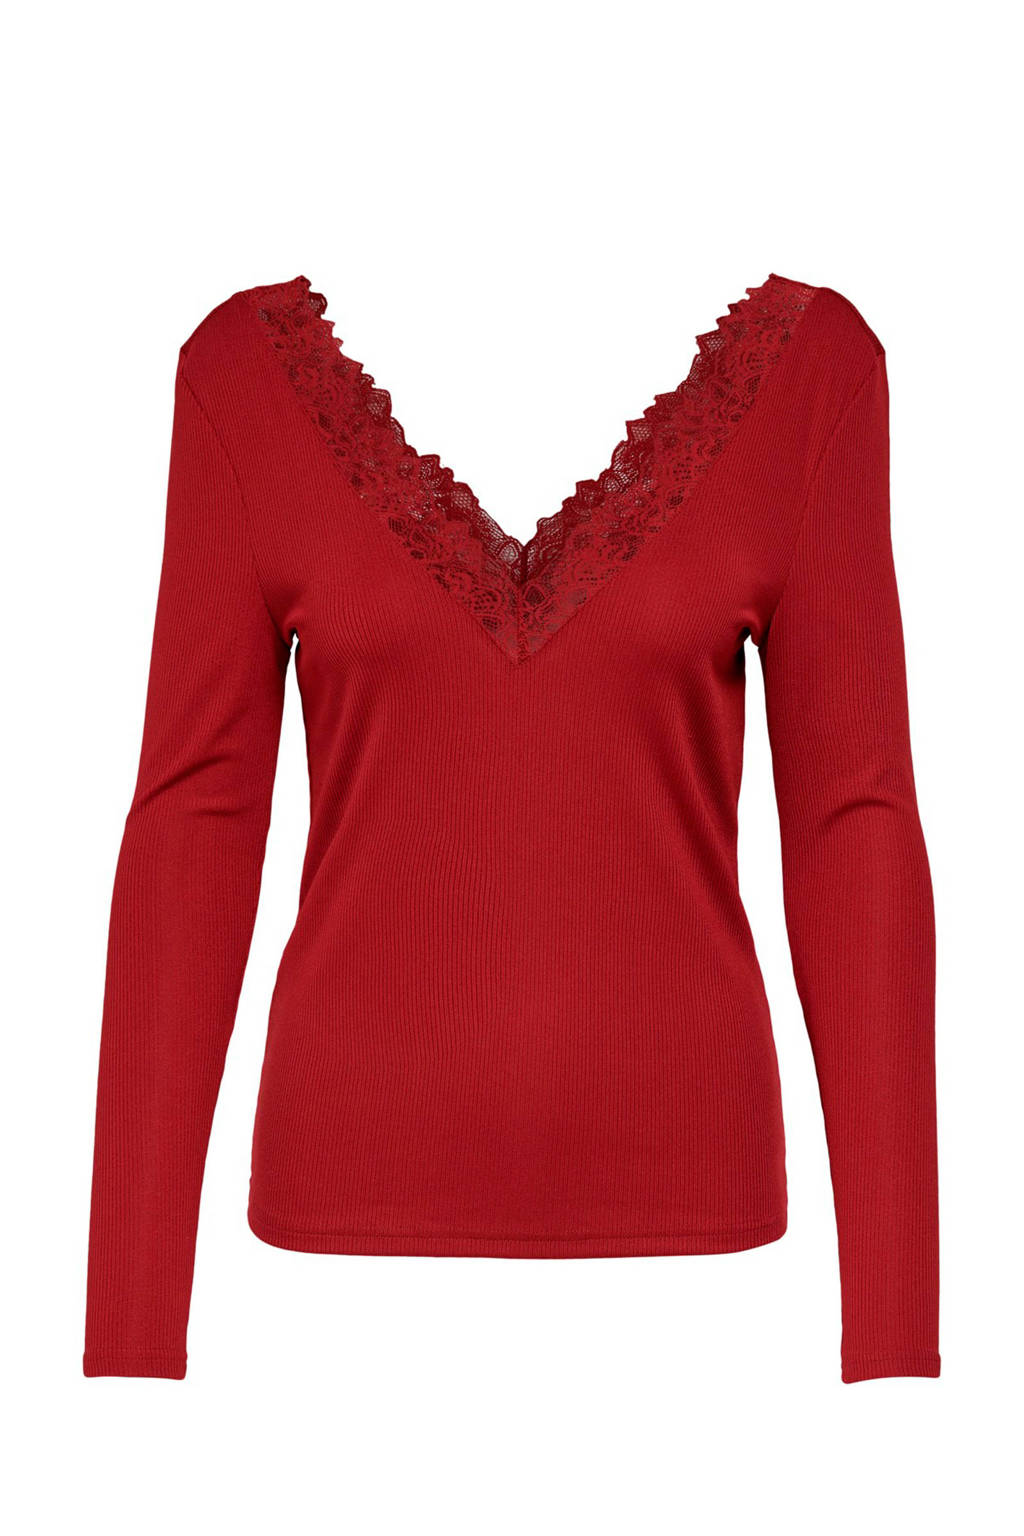 ONLY top met kant rood, Rood